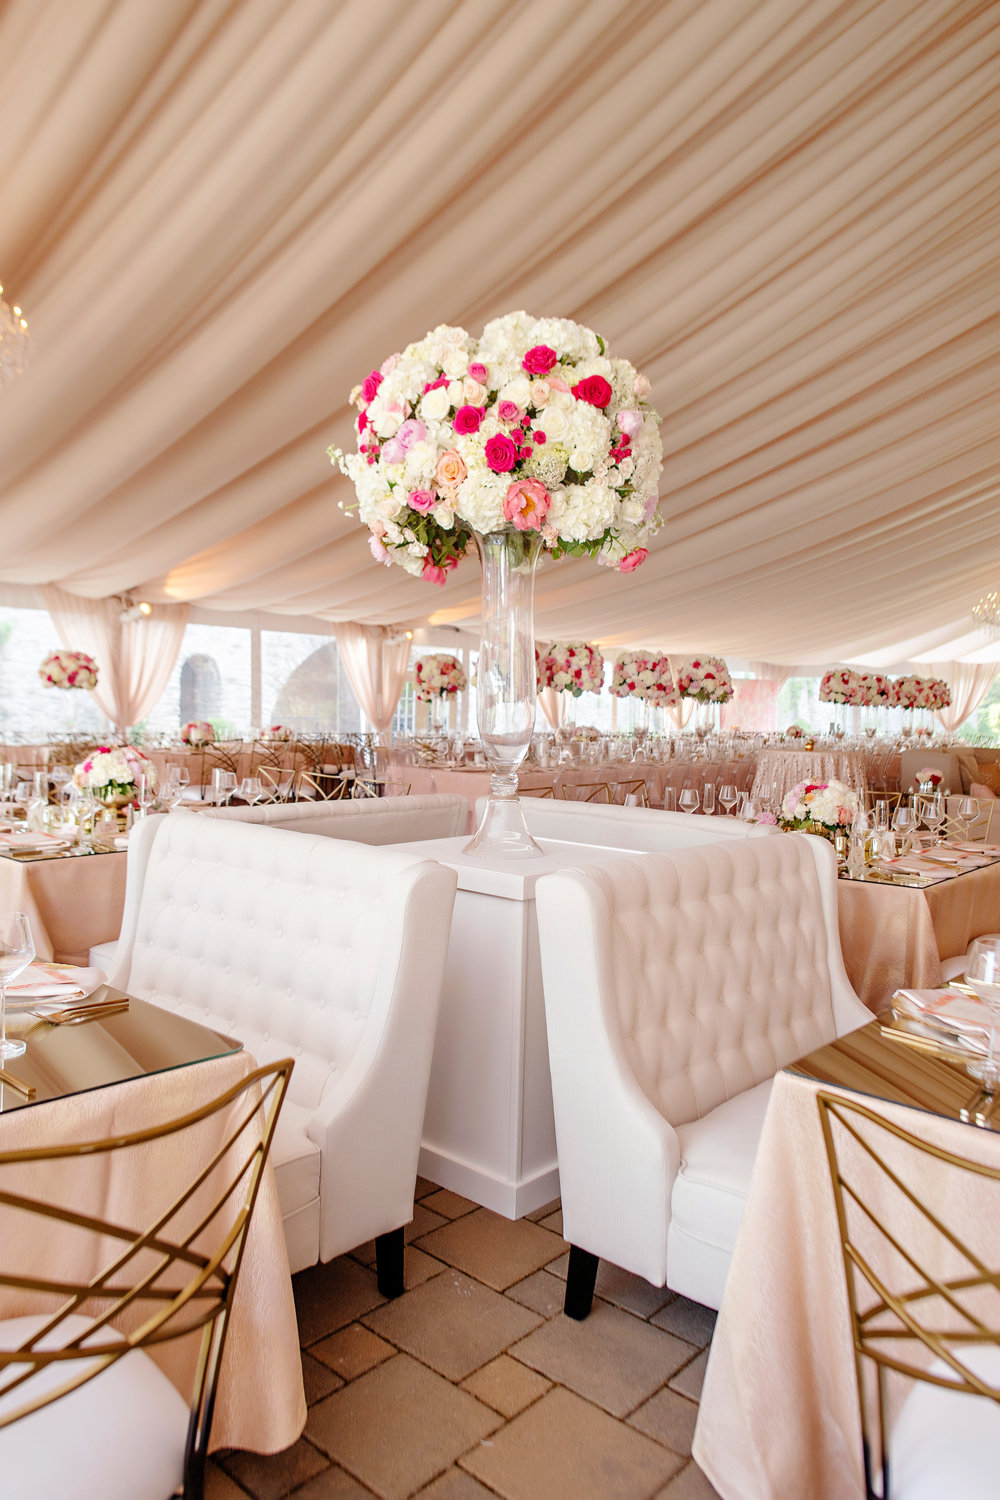 Outdoor tented reception with chandeliers and large focal arrangements in blush, magenta, and white by Yellow Canary Floral Design